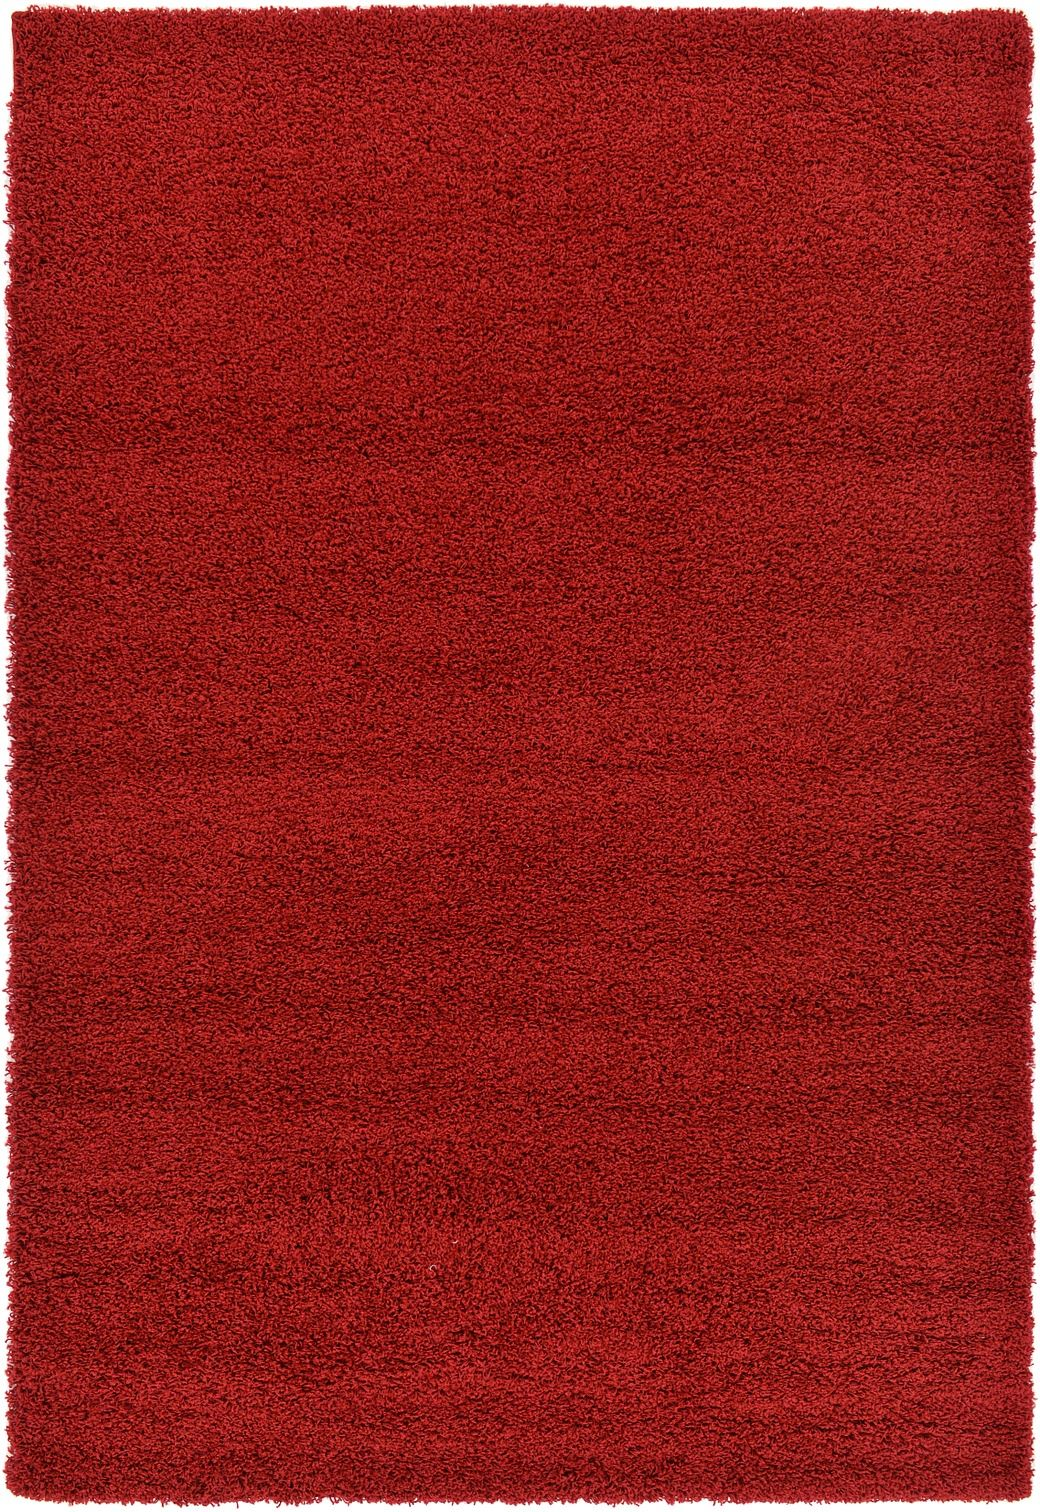 Modern Large Shag Area Rug Contemporary Small Carpet Red